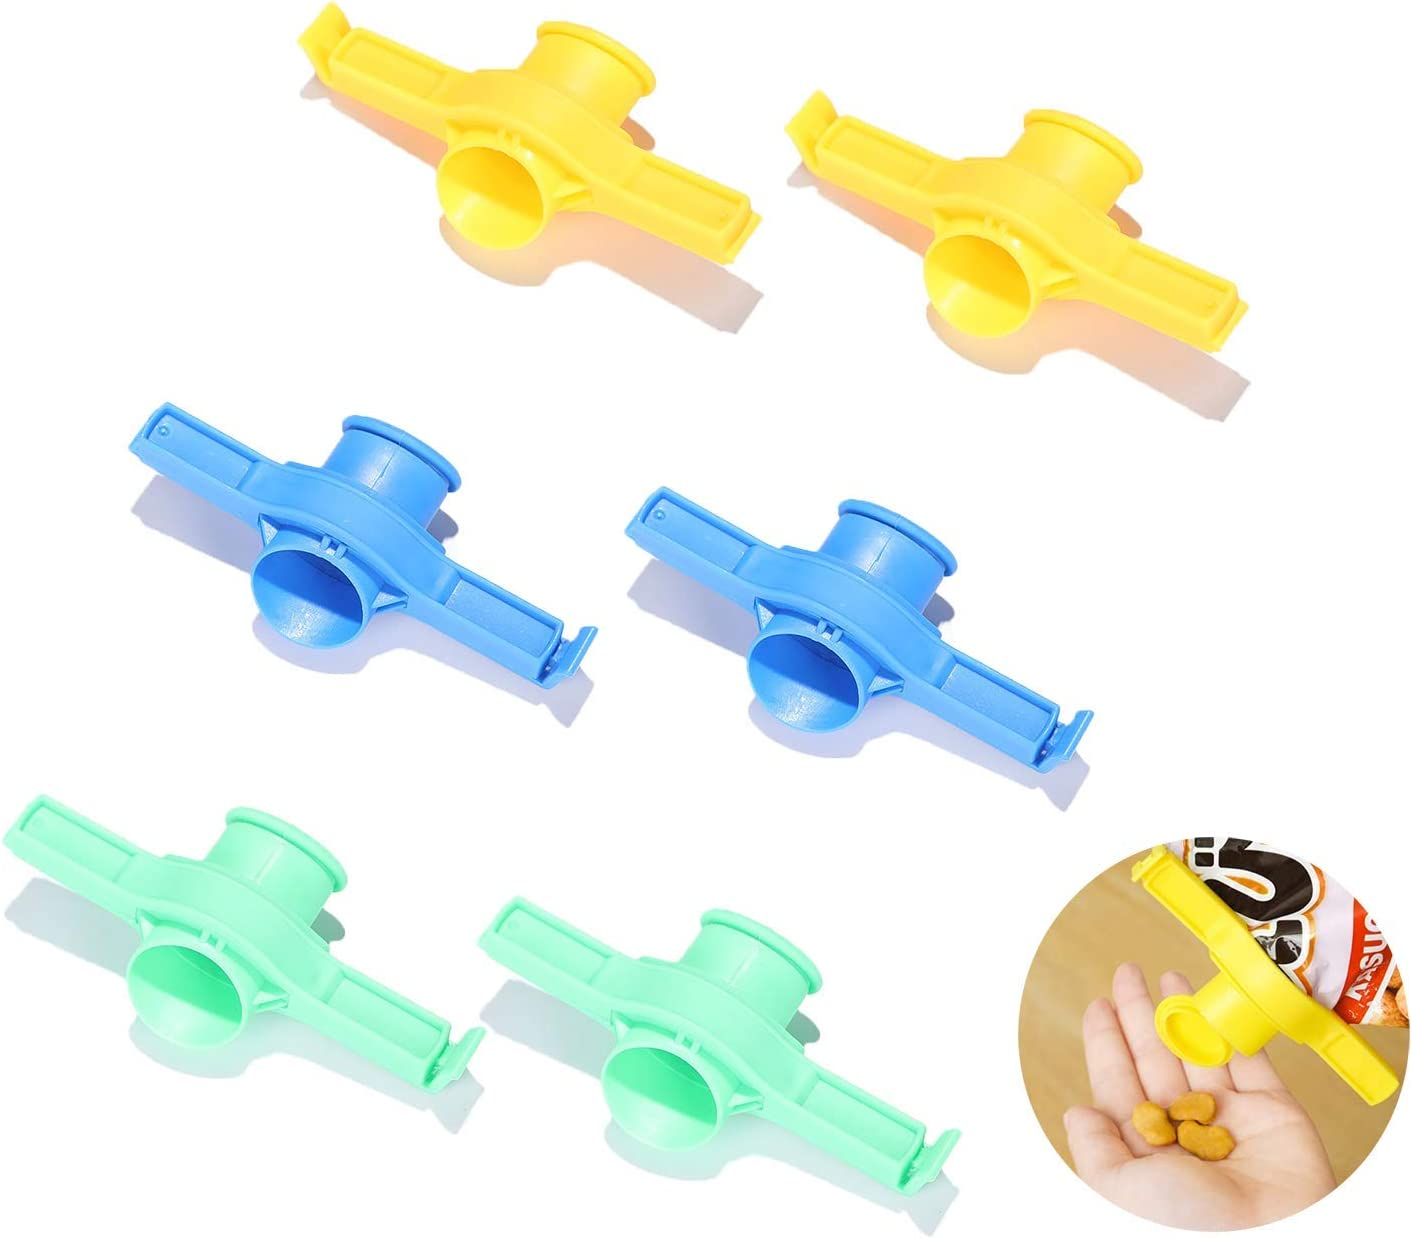 6 Pack Bag Clips for Food, Sealing Clamp with Pour Spouts, Plastic Cap Sealer Clips for Snack and Kitchen Food Storage and Organization (Small)